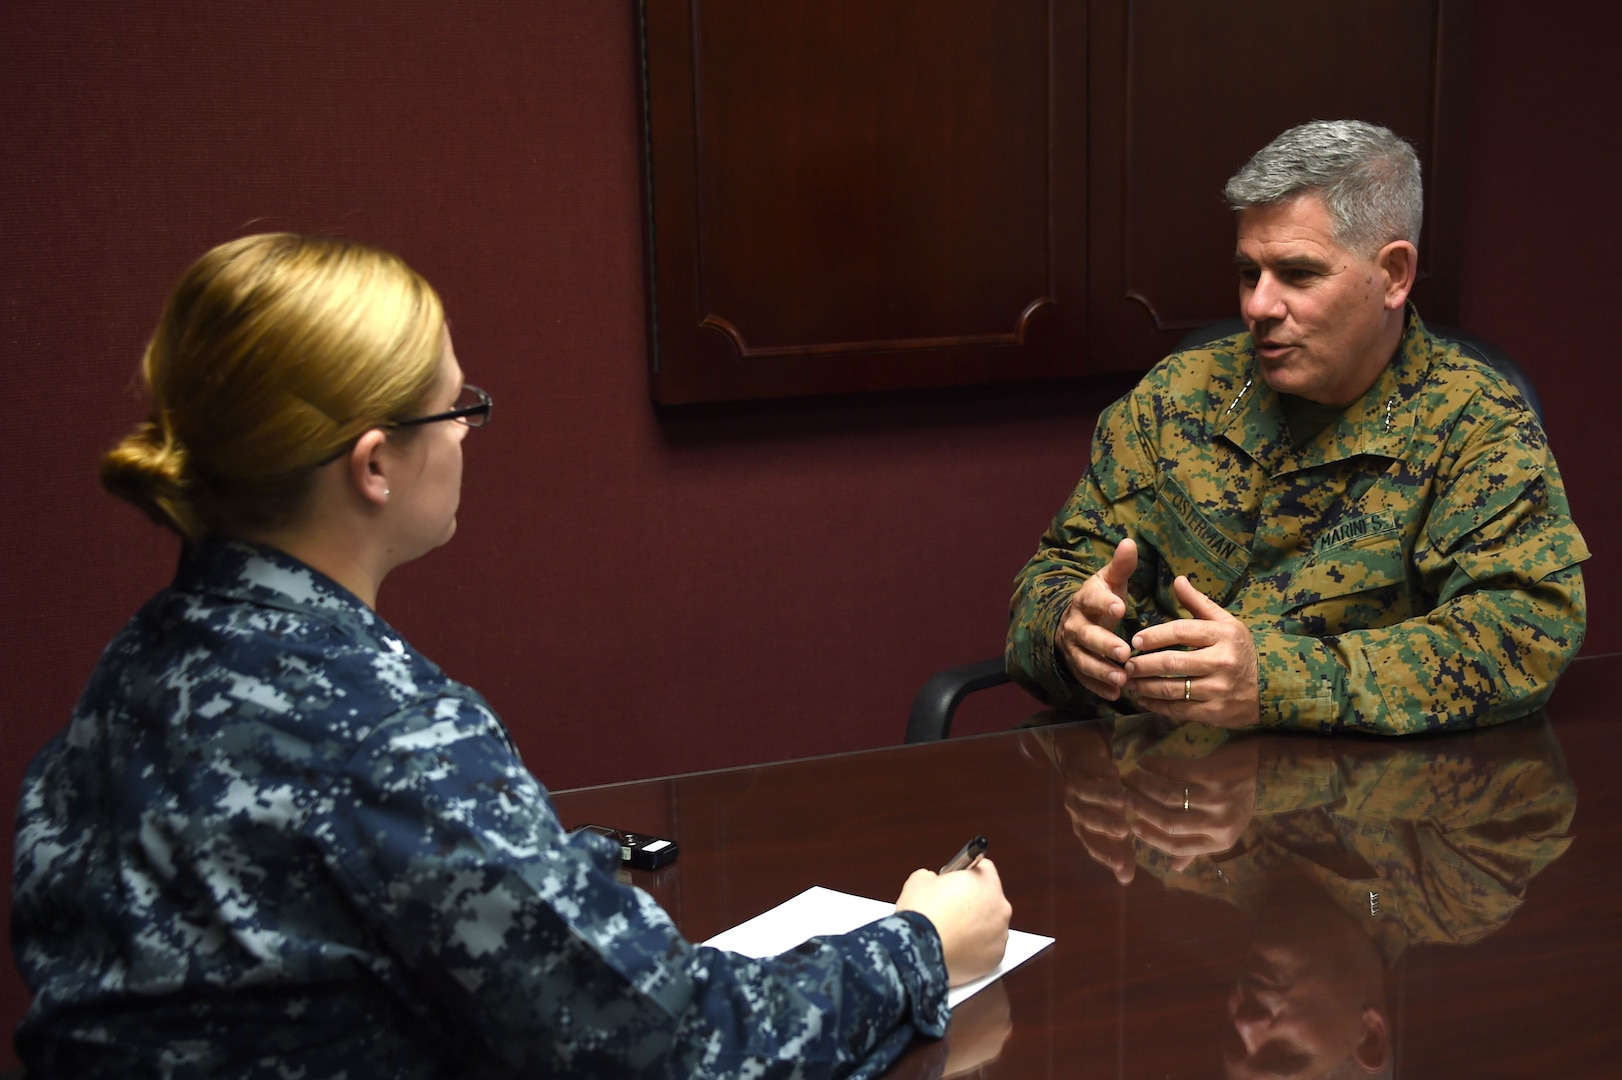 Marine Corps Lt. Gen. Joseph L. Osterman, right, U.S. Special Operations Command deputy commander, conducts an interview during his visit to U.S. Strategic Command (USSTRATCOM) Headquarters, Offutt Air Force Base, Nebraska, Jan. 18.  While here, Osterman discussed the mission transfer of Countering Weapons of Mass Destruction, toured the Global Operations Center and received capabilities and integration briefings on nuclear command, control and communication, space, electronic warfare and cyber.